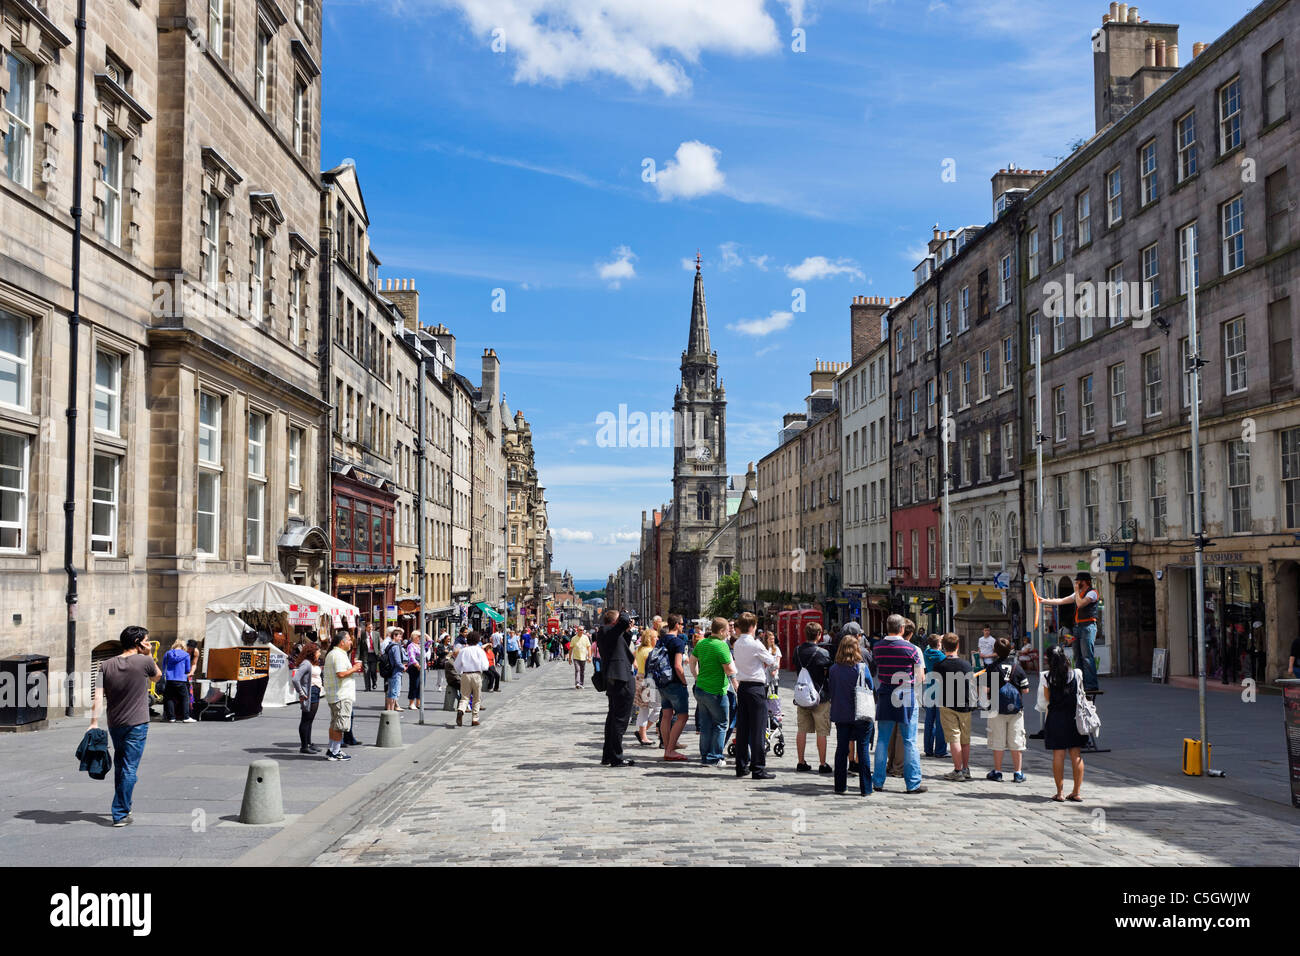 Shops and street entertainer on the High Street looking towards Holyrood, The Royal Mile, Edinburgh, Scotland, UK - Stock Image